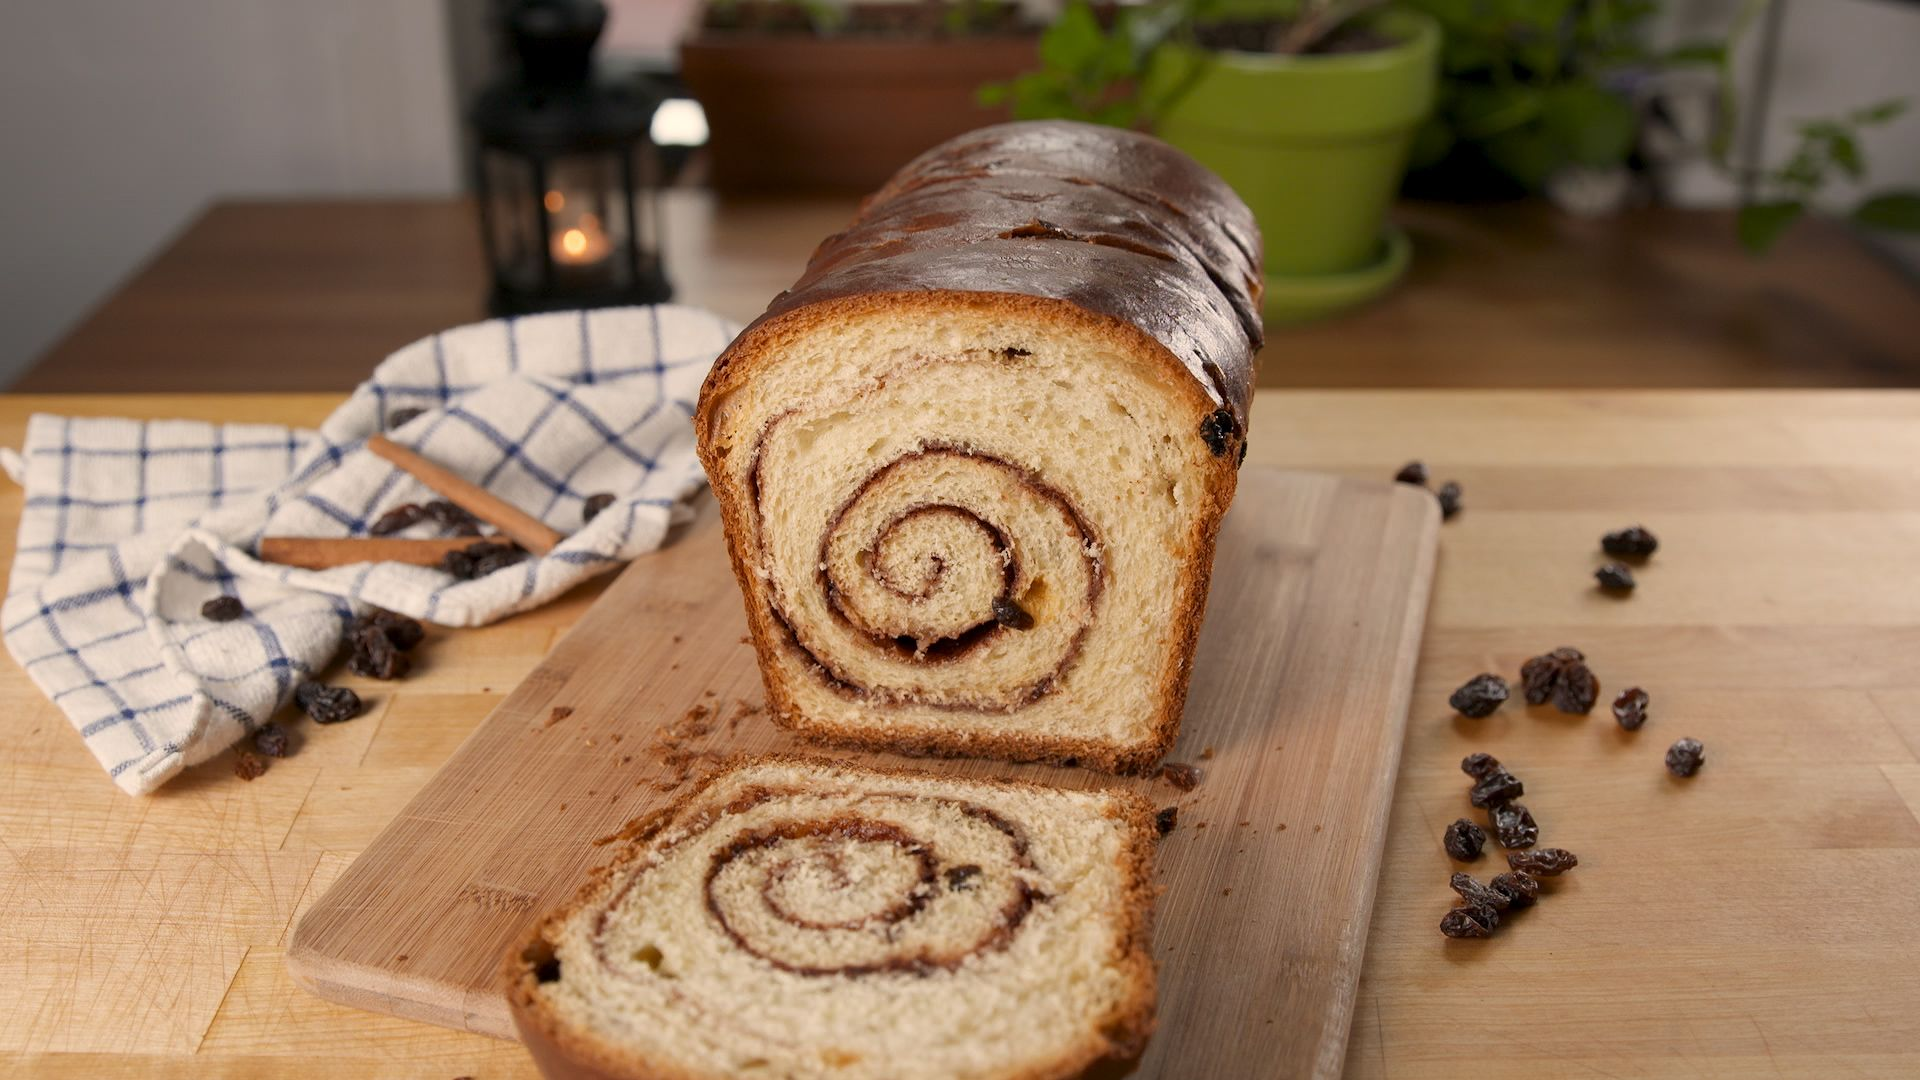 Best Cinnamon Swirl Bread Recipe How To Make Cinnamon Swirl Bread